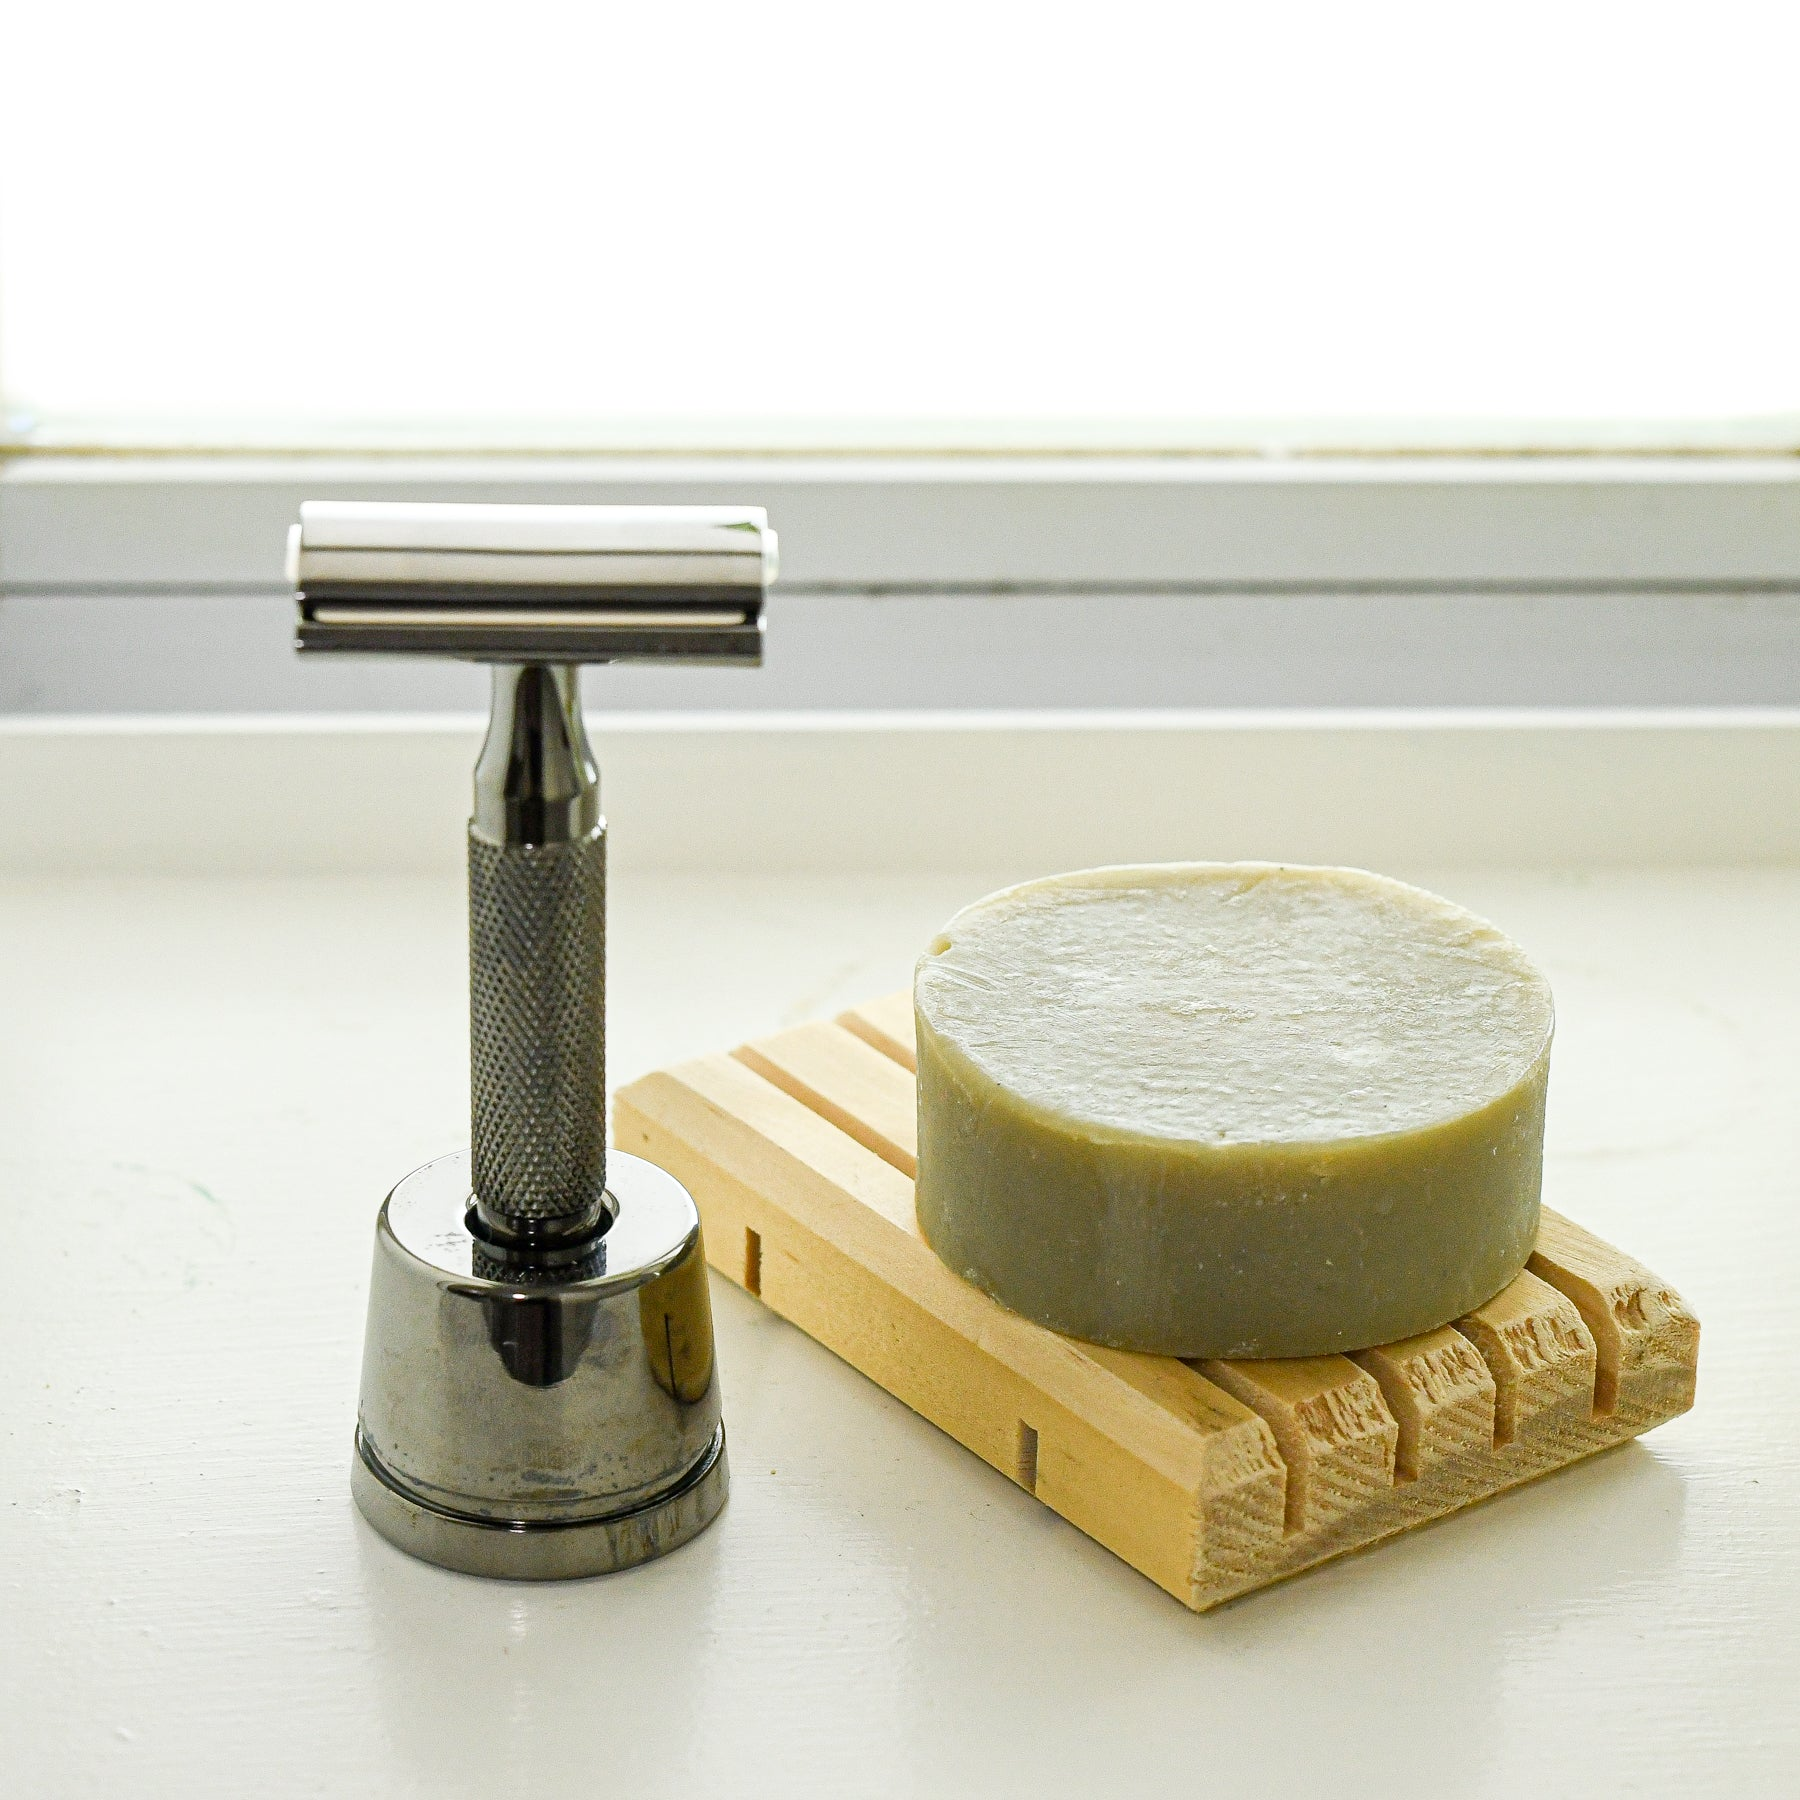 Pine soap tray dish with Rockwell razor and shave/face soap